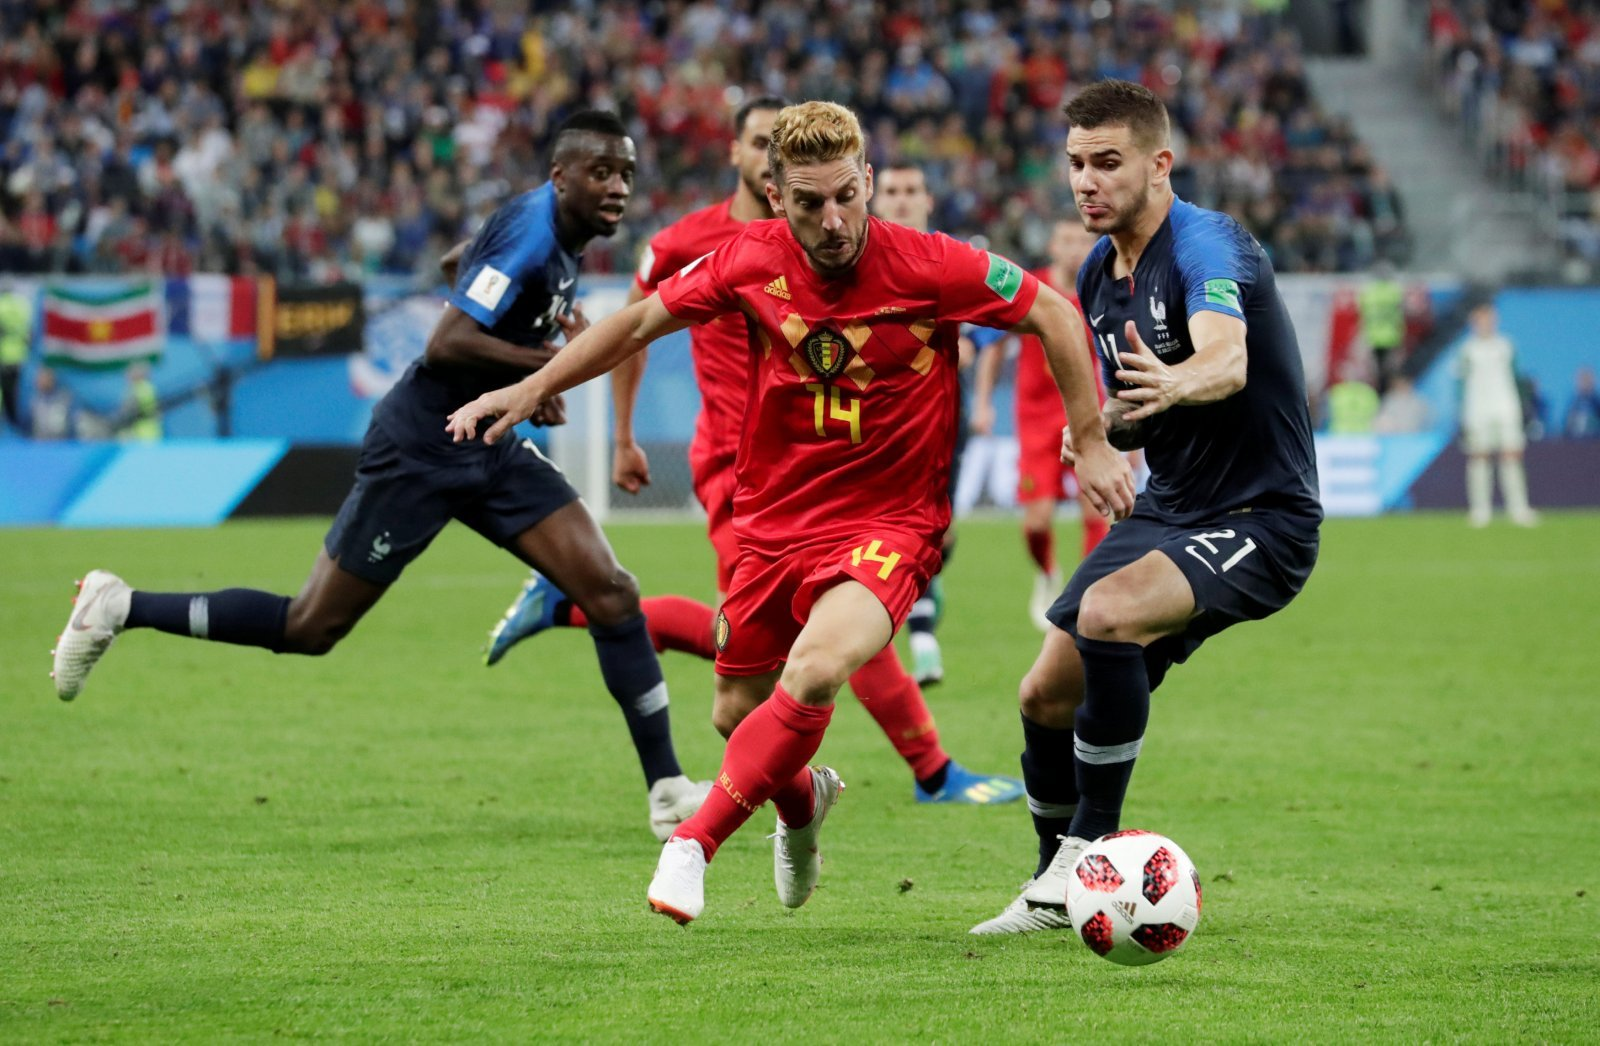 Dries Mertens is exactly what Mauricio Pochettino is looking for in the transfer market